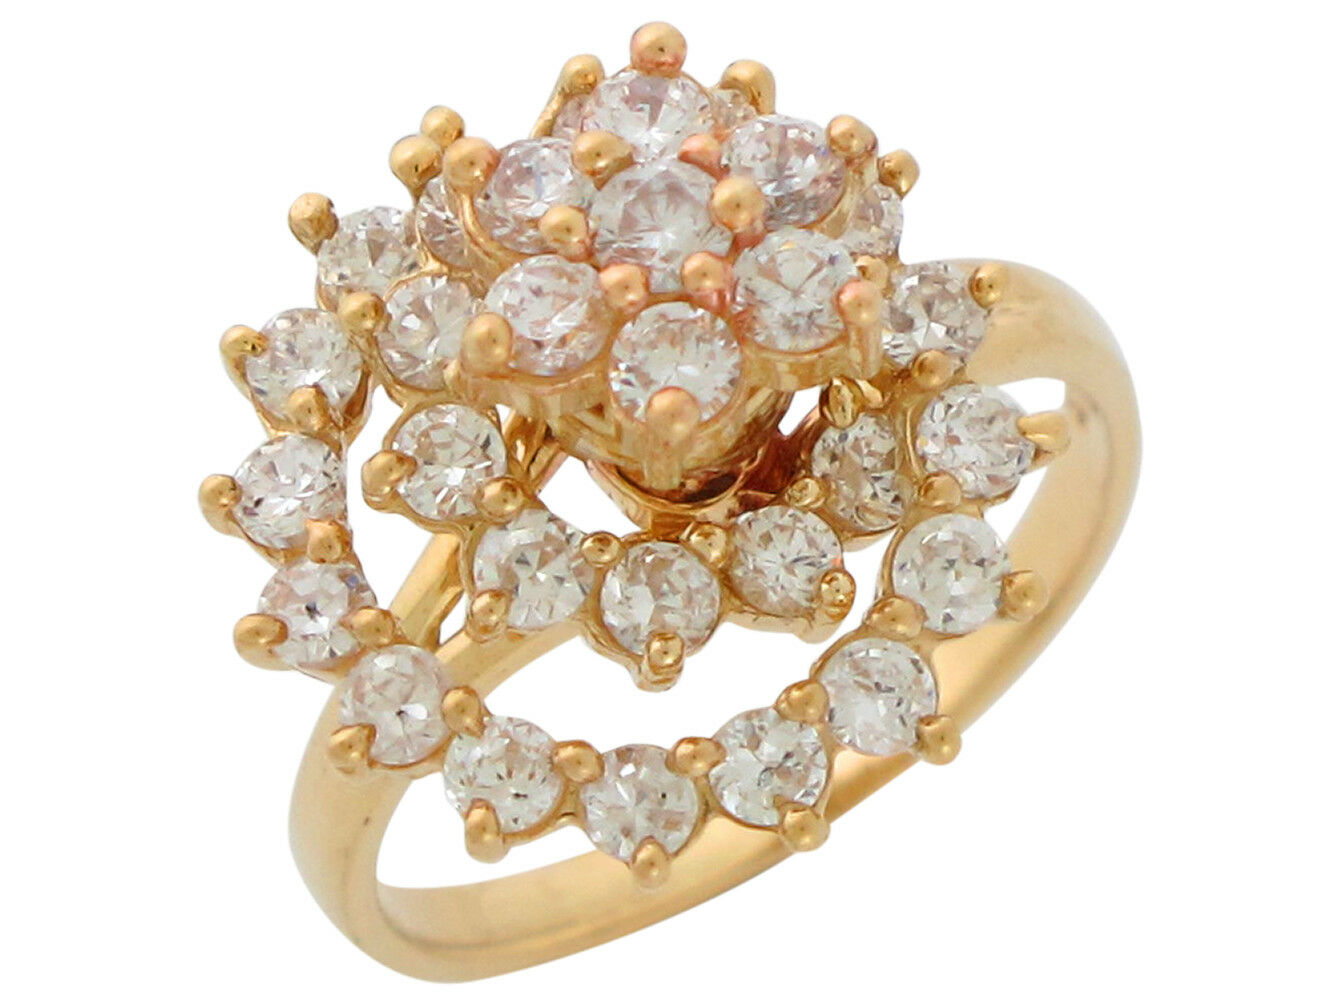 10k or 14k Yellow gold Moving Motion Spinning White CZ Accented Ladies Ring